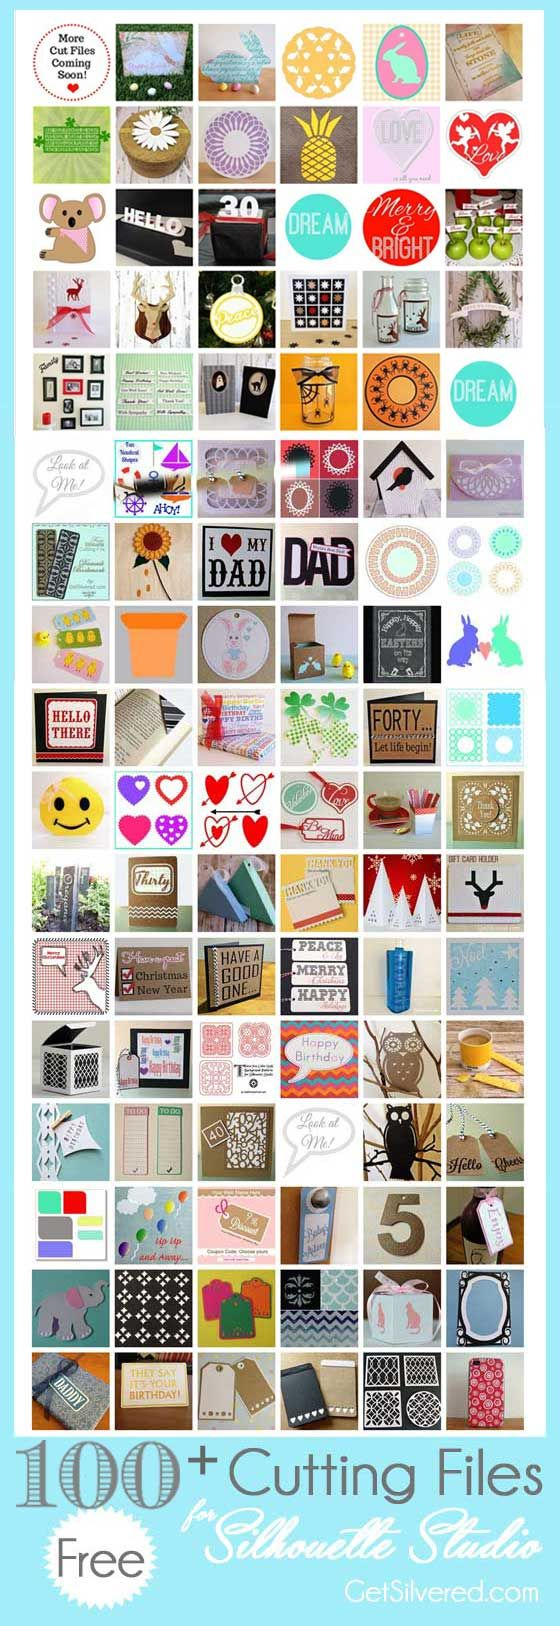 Celebrating 100 Free Silhouette Cutting Files from Get Silvered #SilhouetteCameo #freecutfiles #SilhouetteRocks